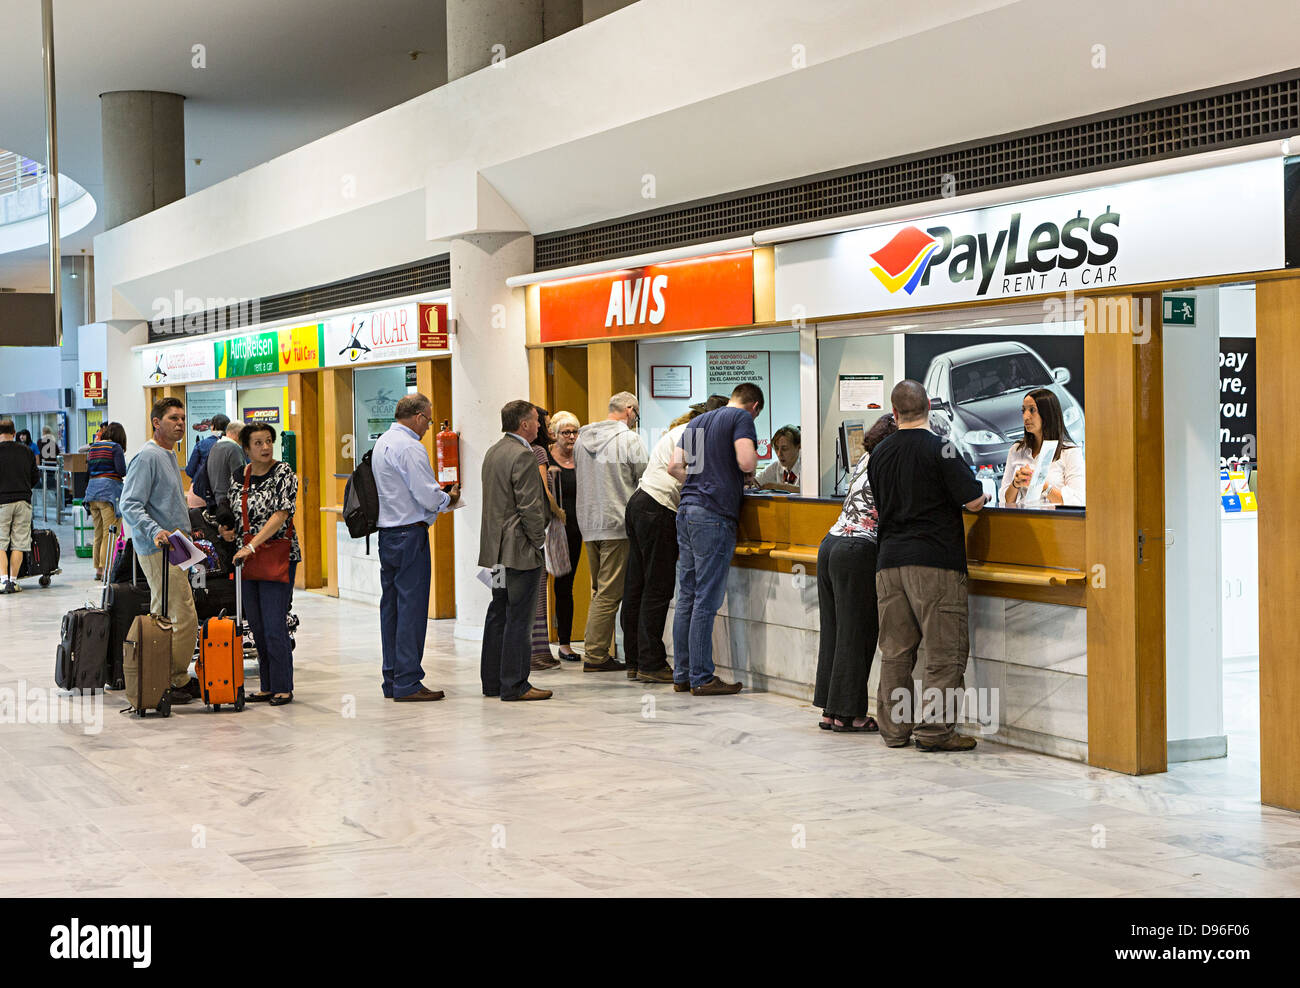 airport car hire stockfotos airport car hire bilder alamy. Black Bedroom Furniture Sets. Home Design Ideas